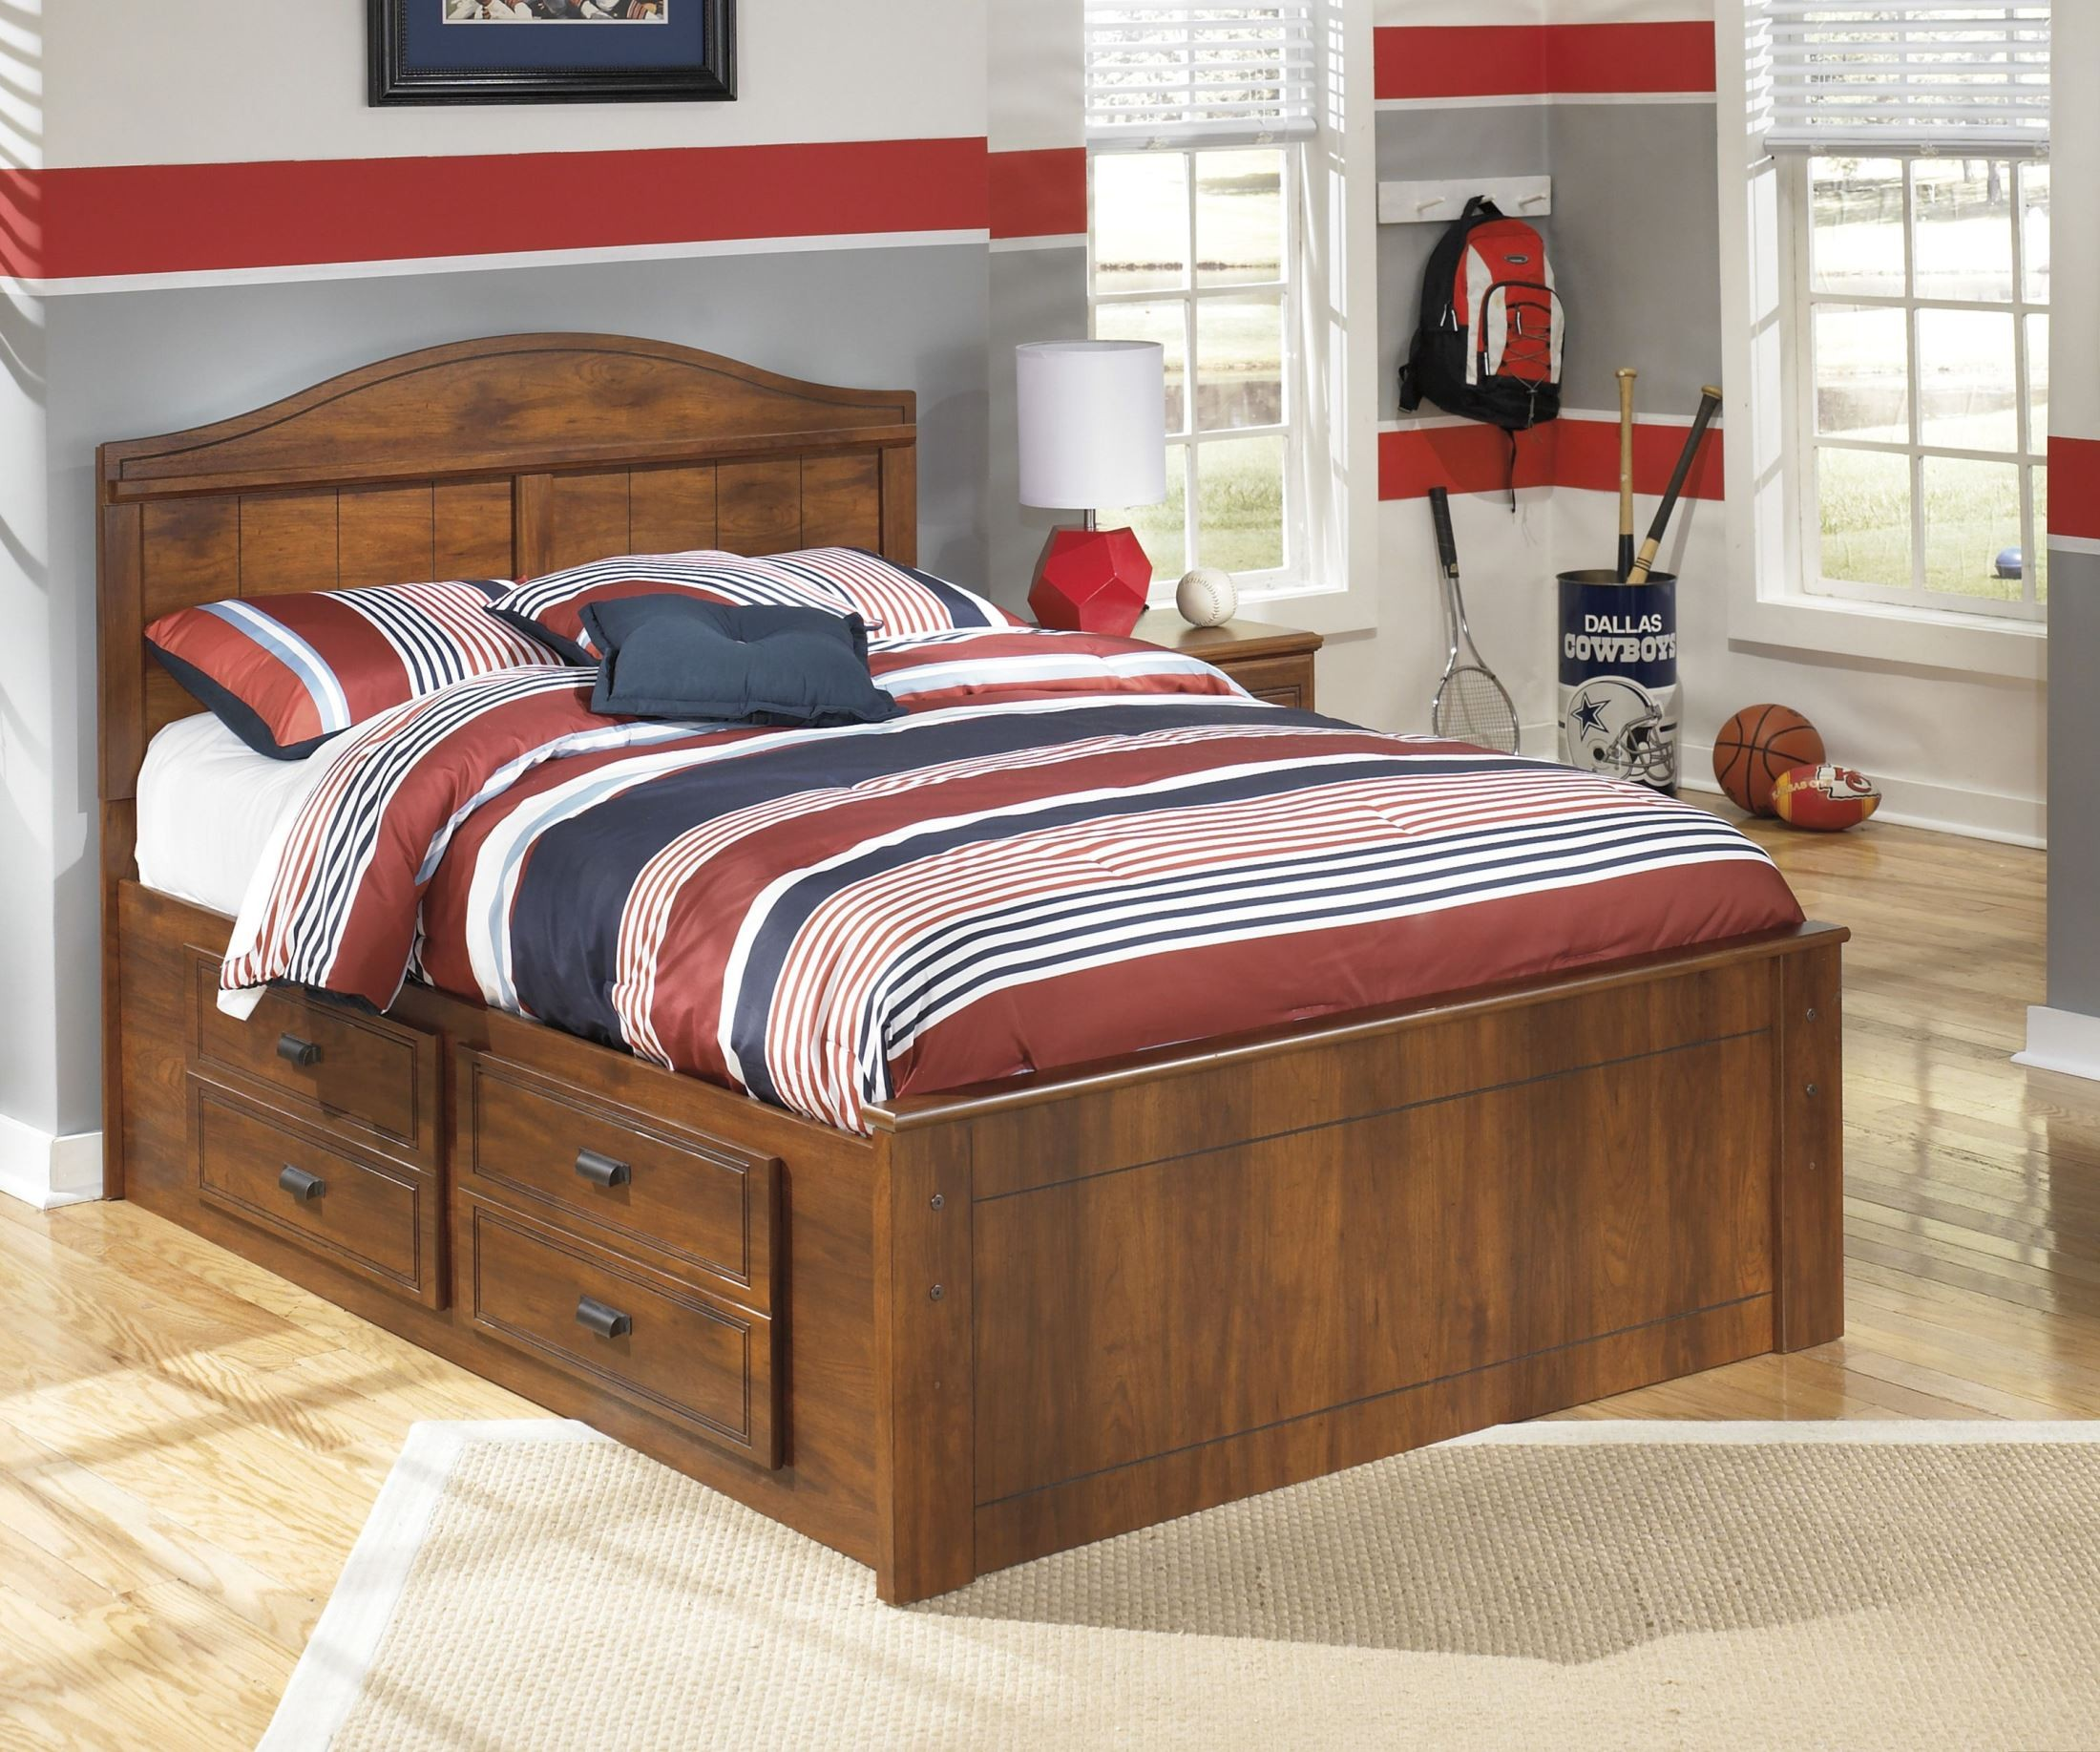 Barchan Full Panel Bed With Underbed Storage, B228-50-87